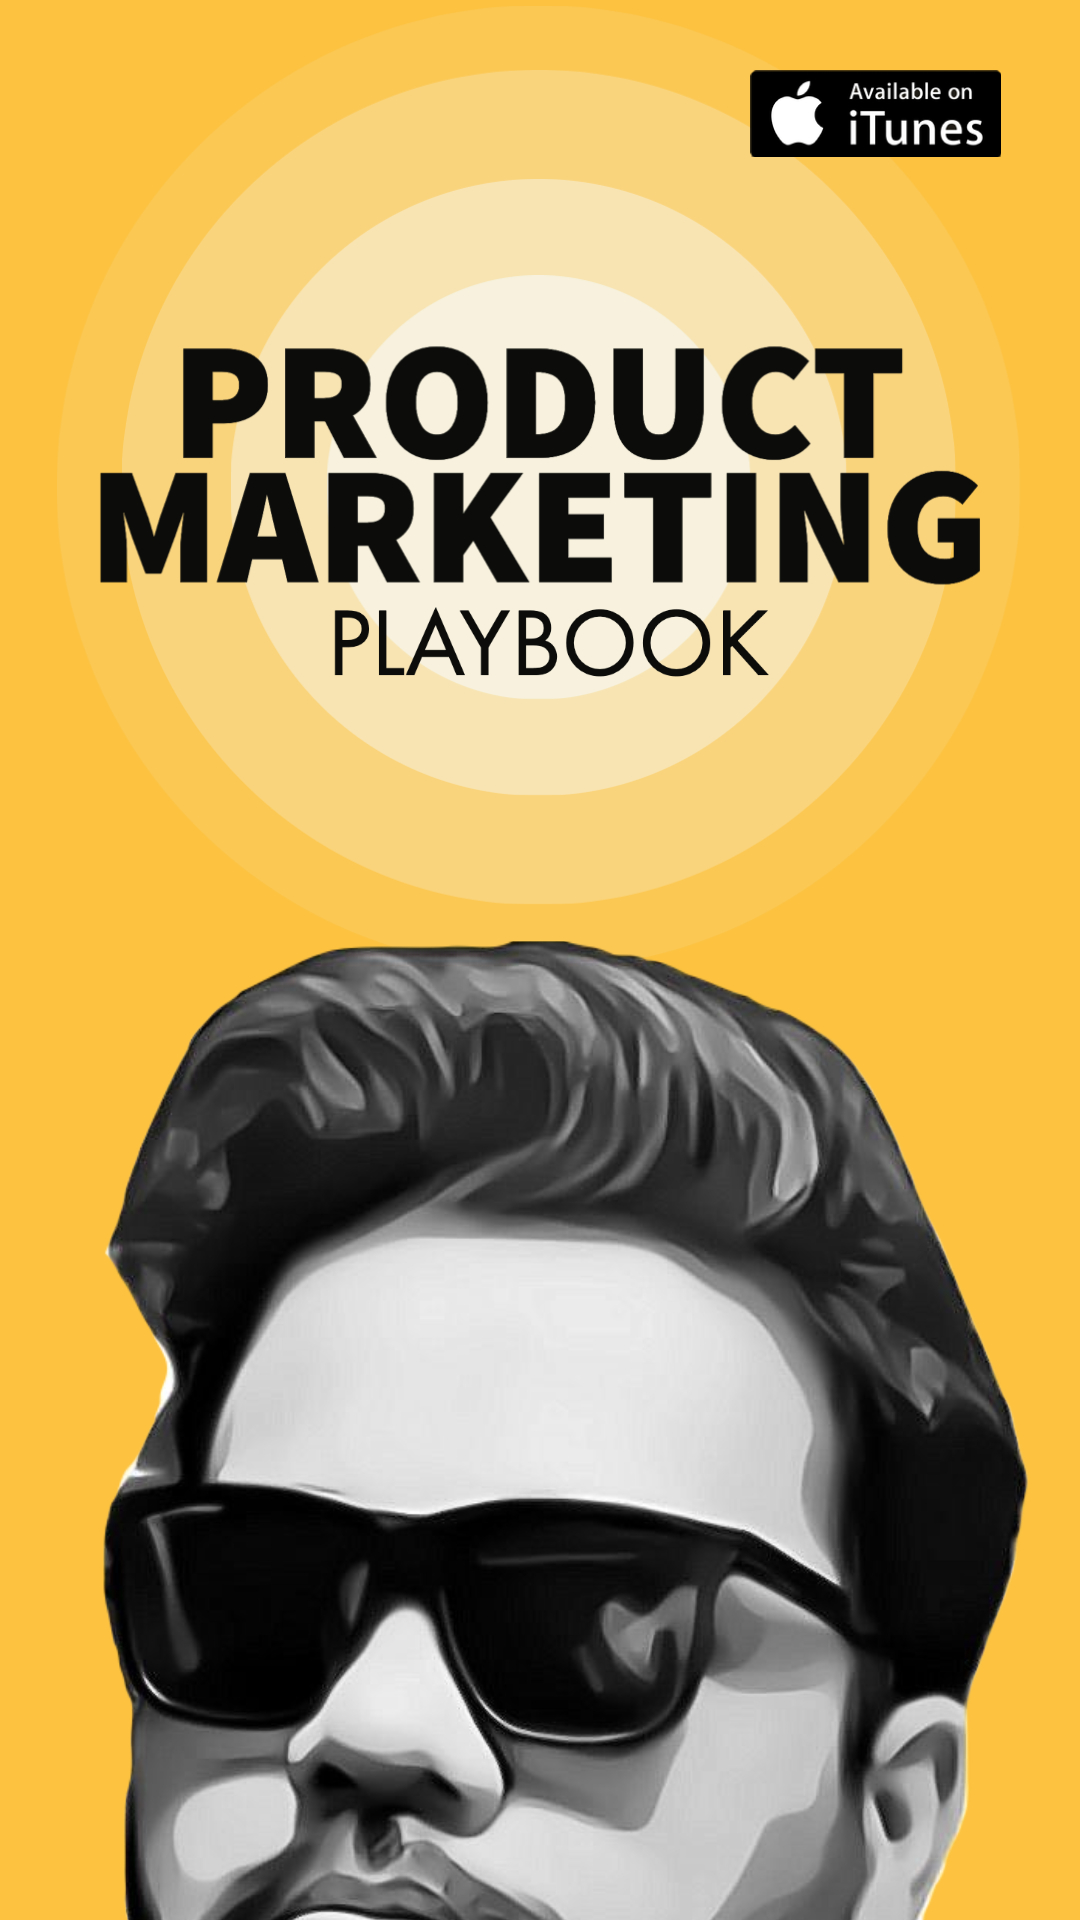 Product Marketing Playbook Podcast